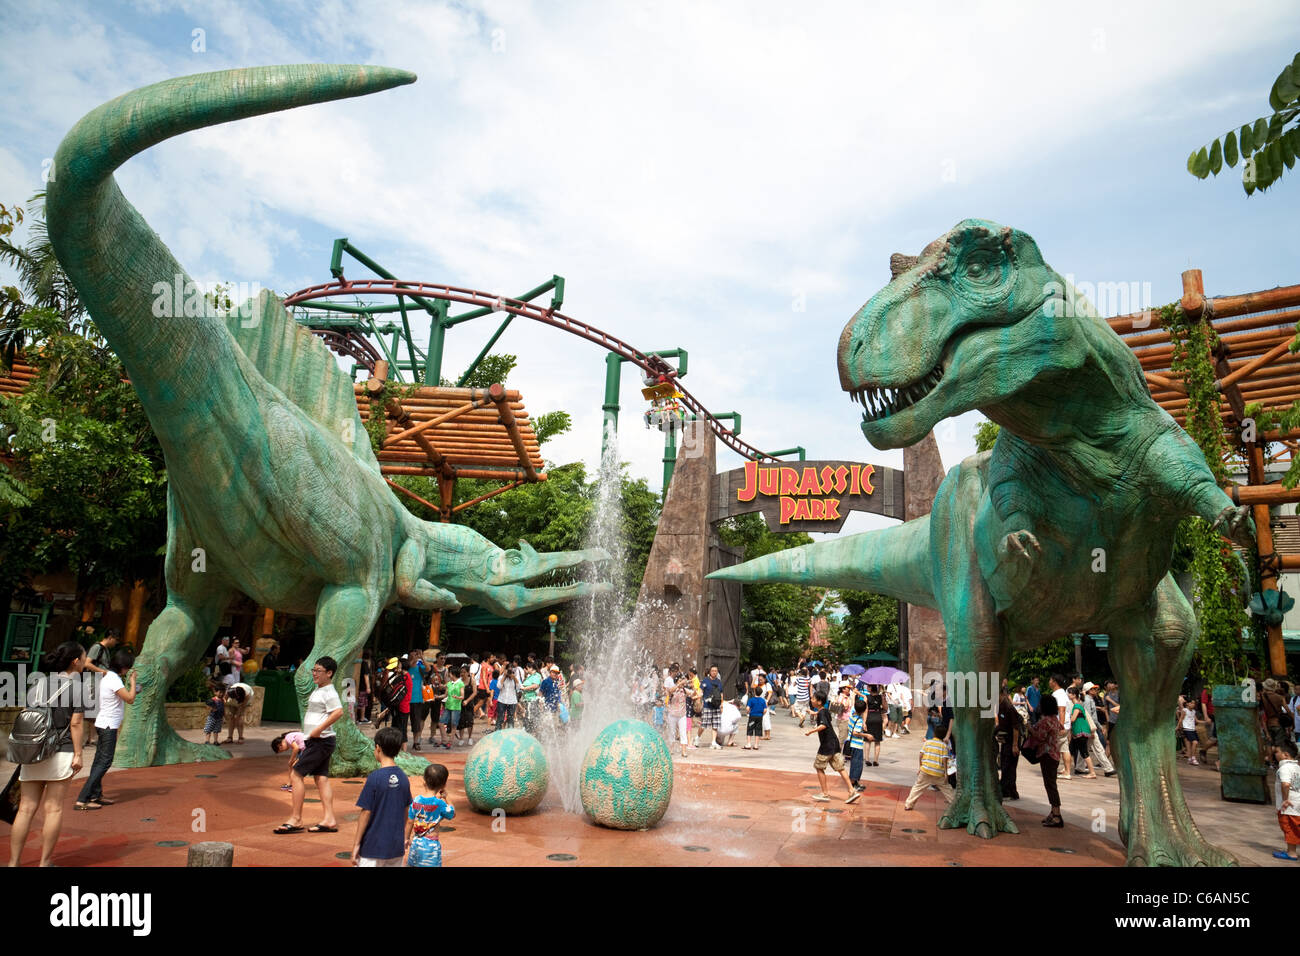 The Jurassic Park attraction at Universal Studios ...